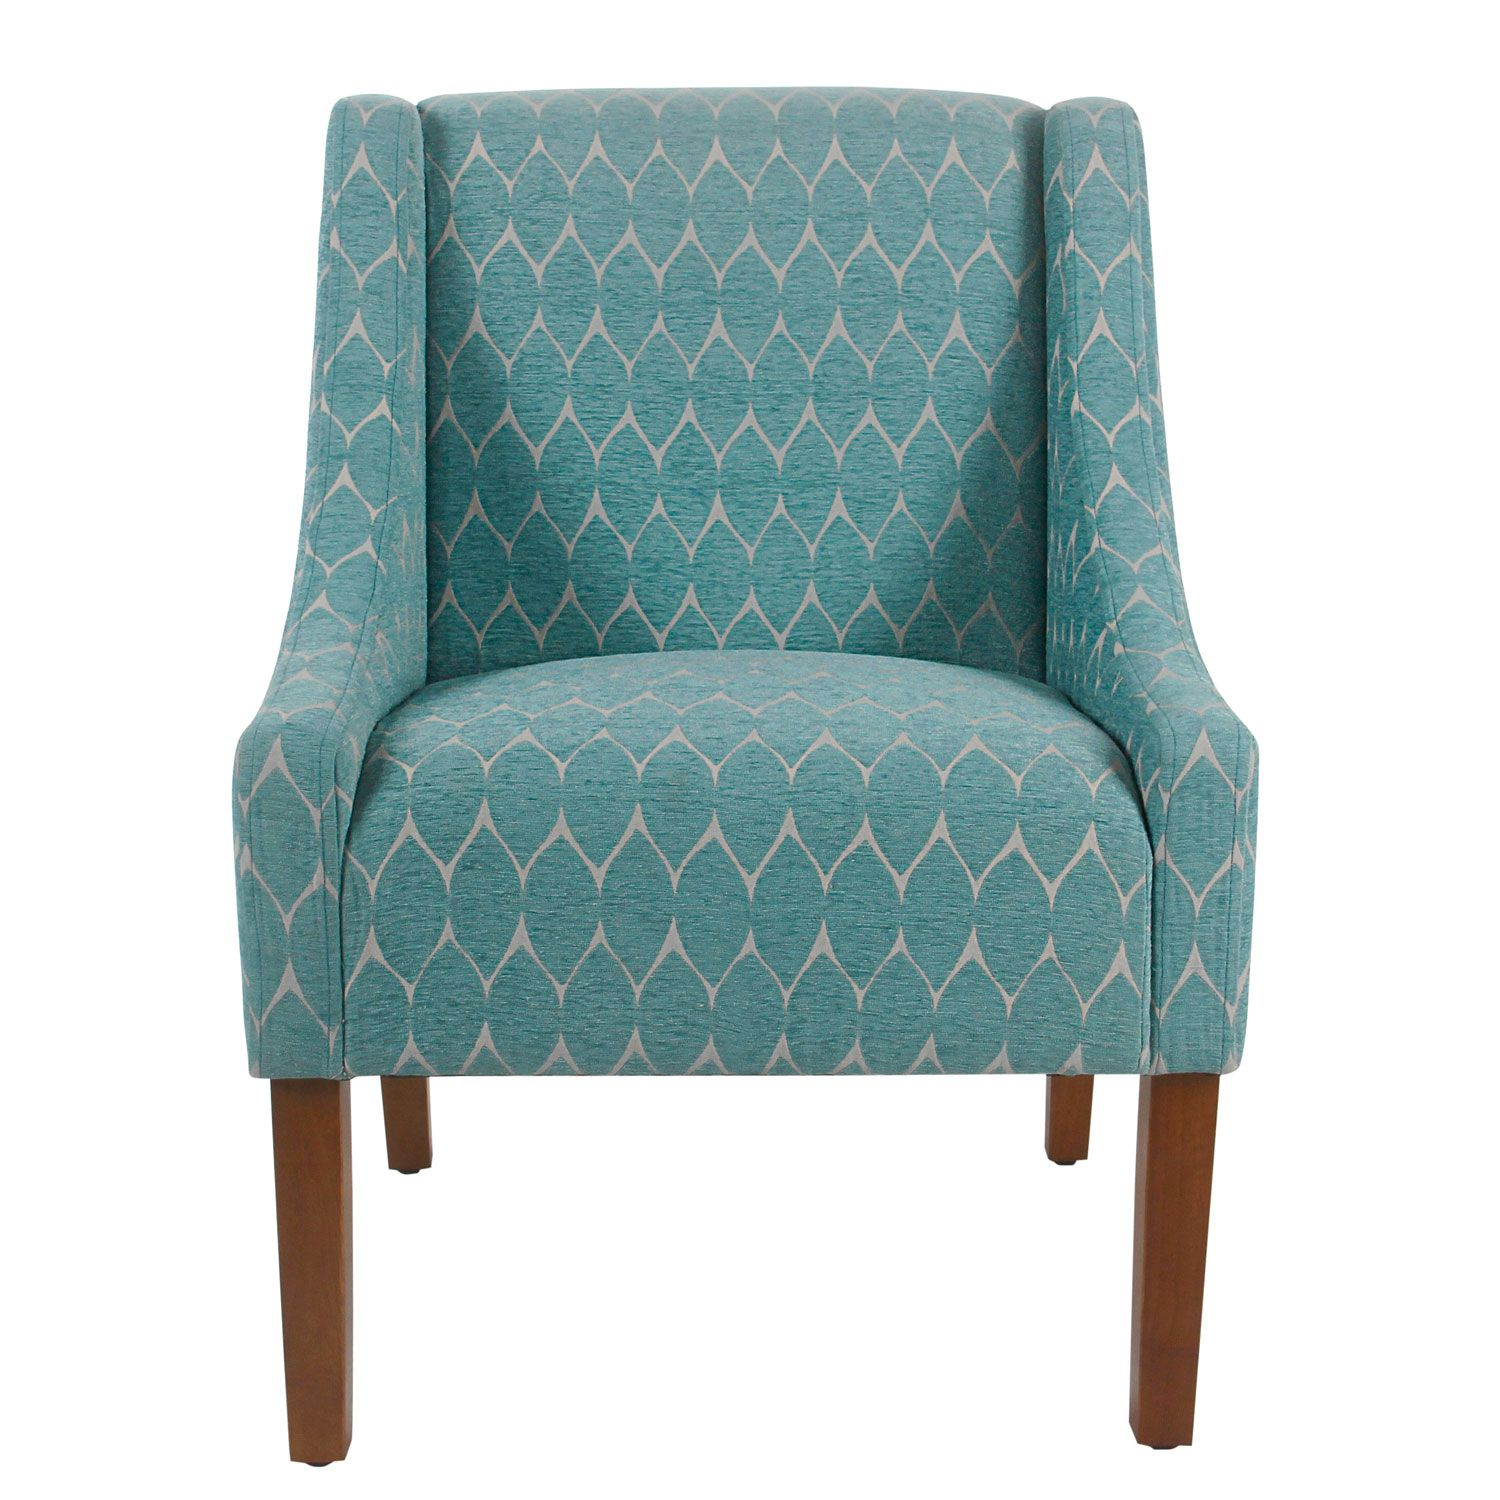 Meadow Lane Modern Swoop Accent Chair Textured Teal K6908 F2247